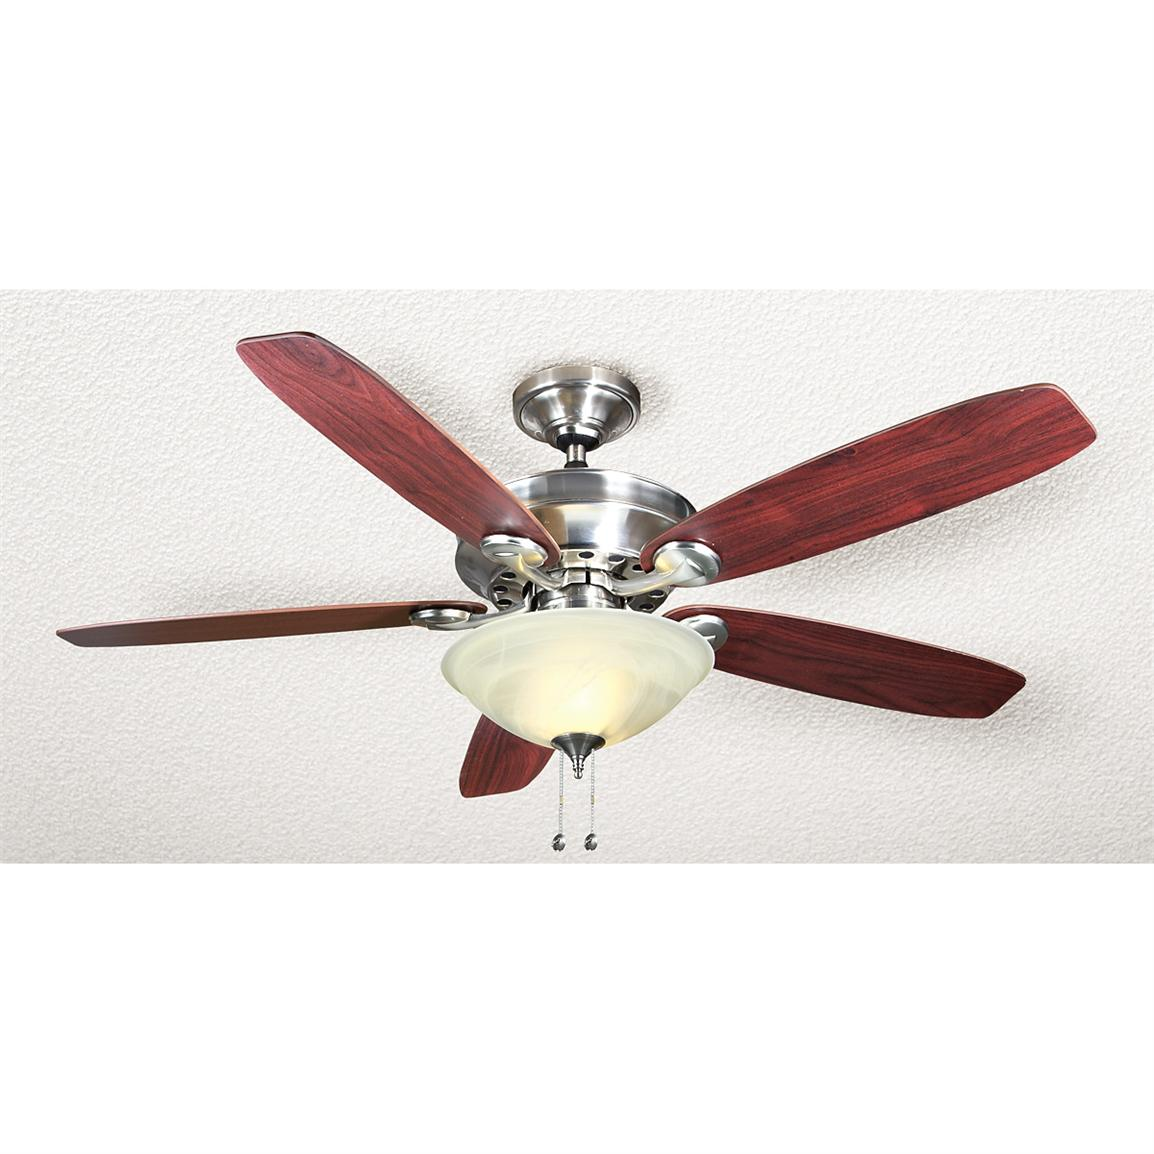 refurbished ceiling fans photo - 3